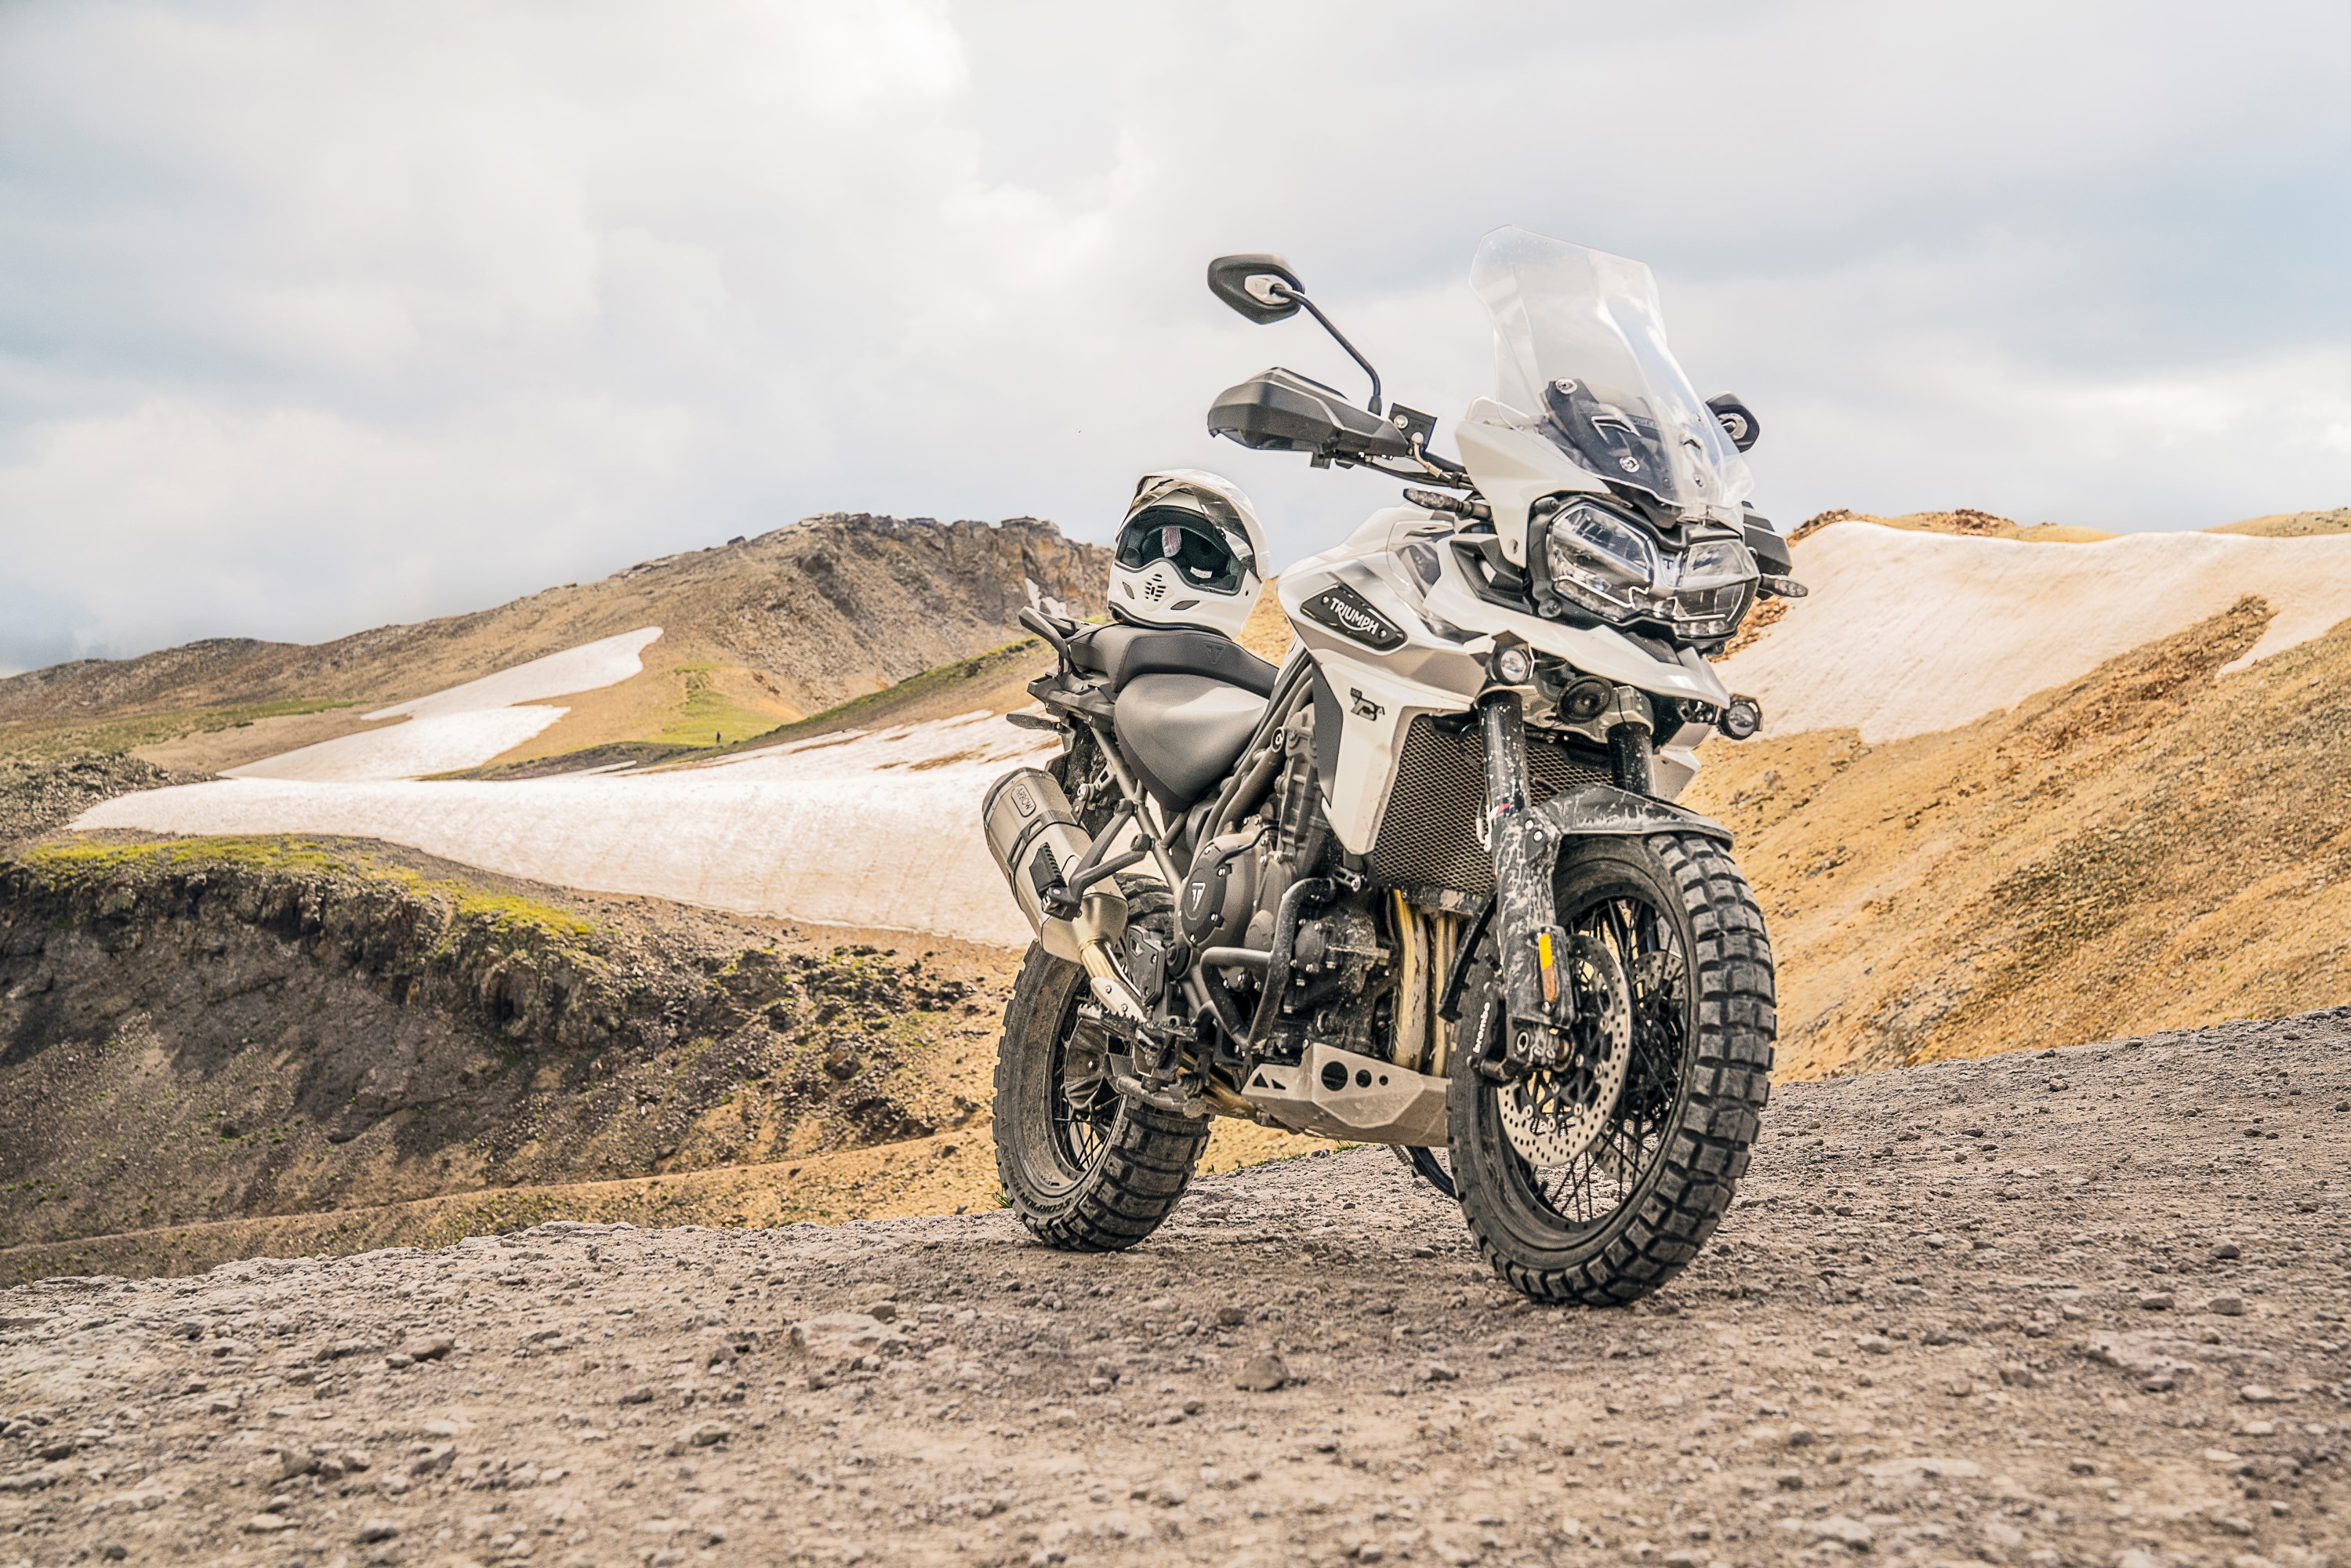 Triumphs Tiger 1200 And 800 Grows Bigger Claws For 2018 Top Speed